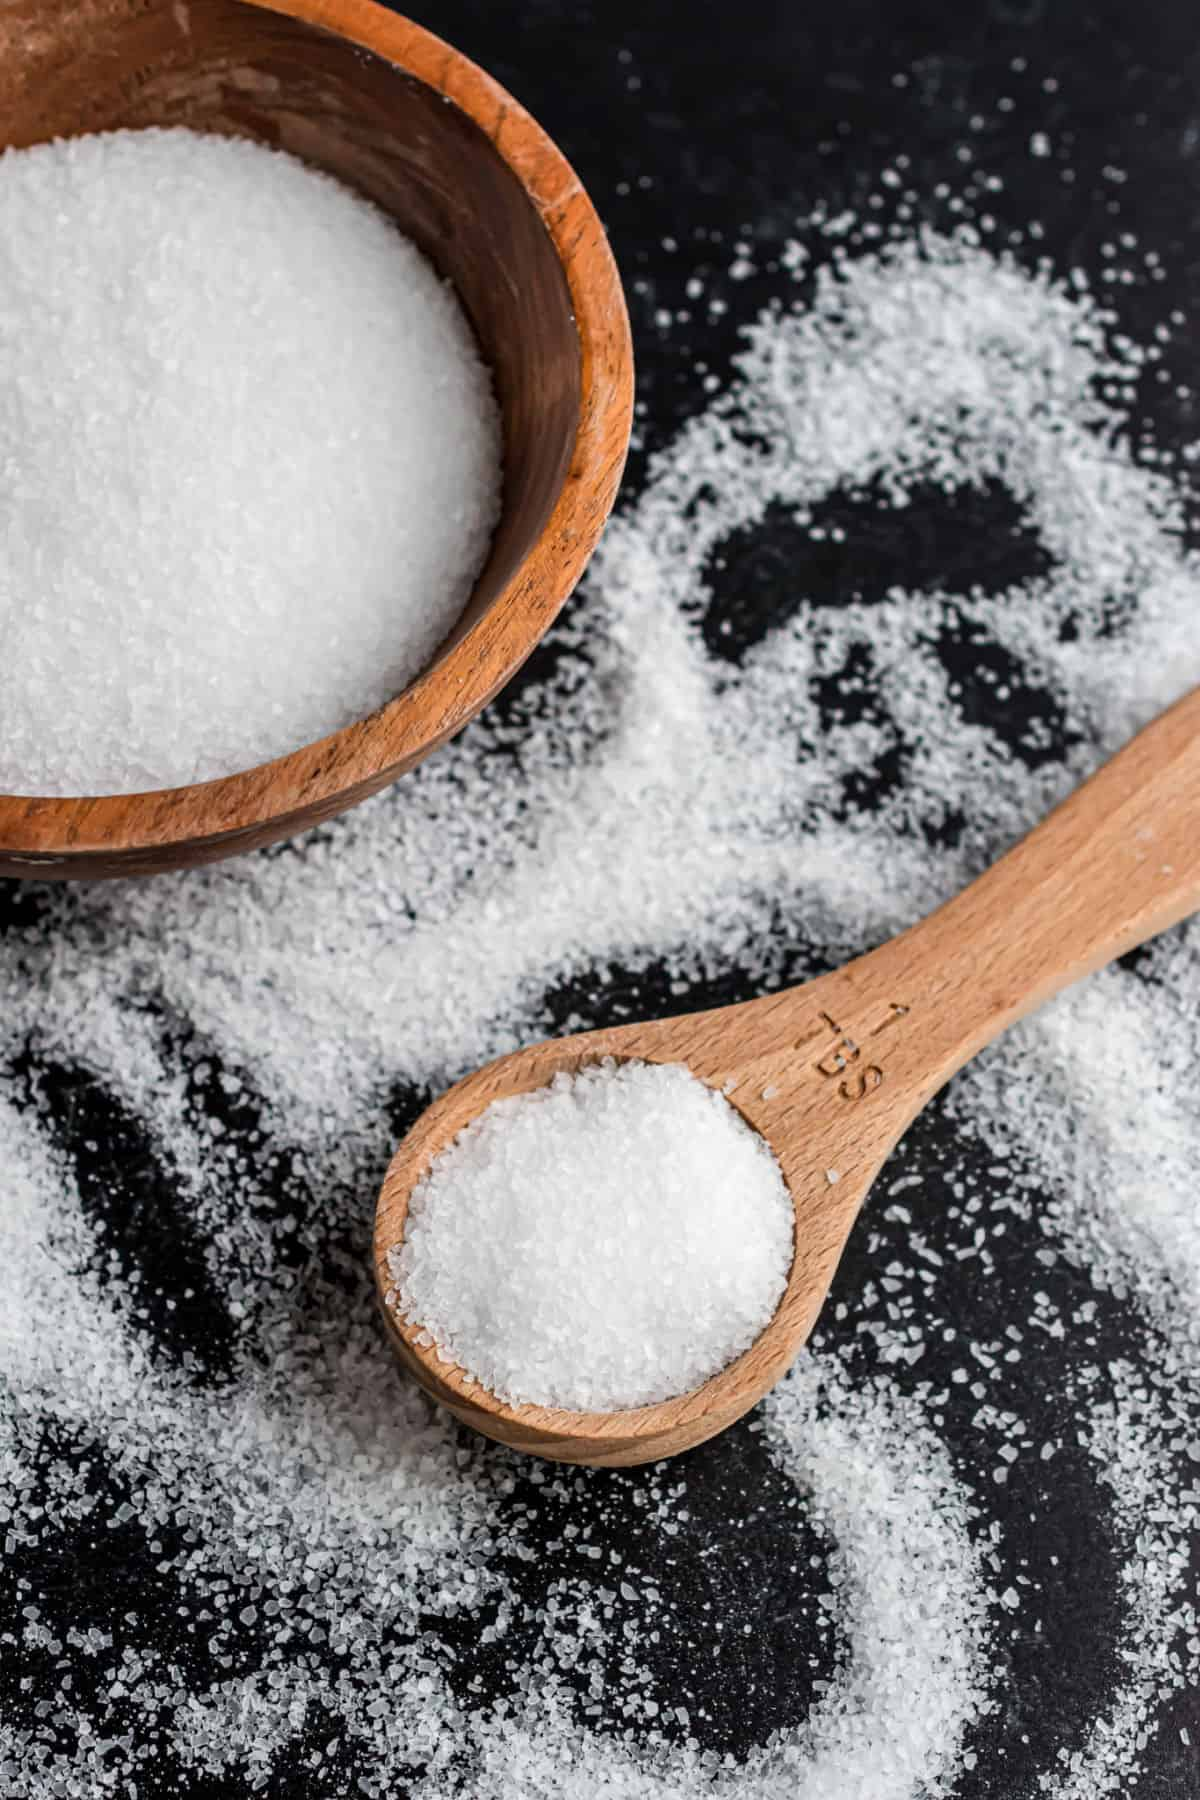 Kosher salt in a wooden bowl spilled onto a balck surface with a wooden spoon.